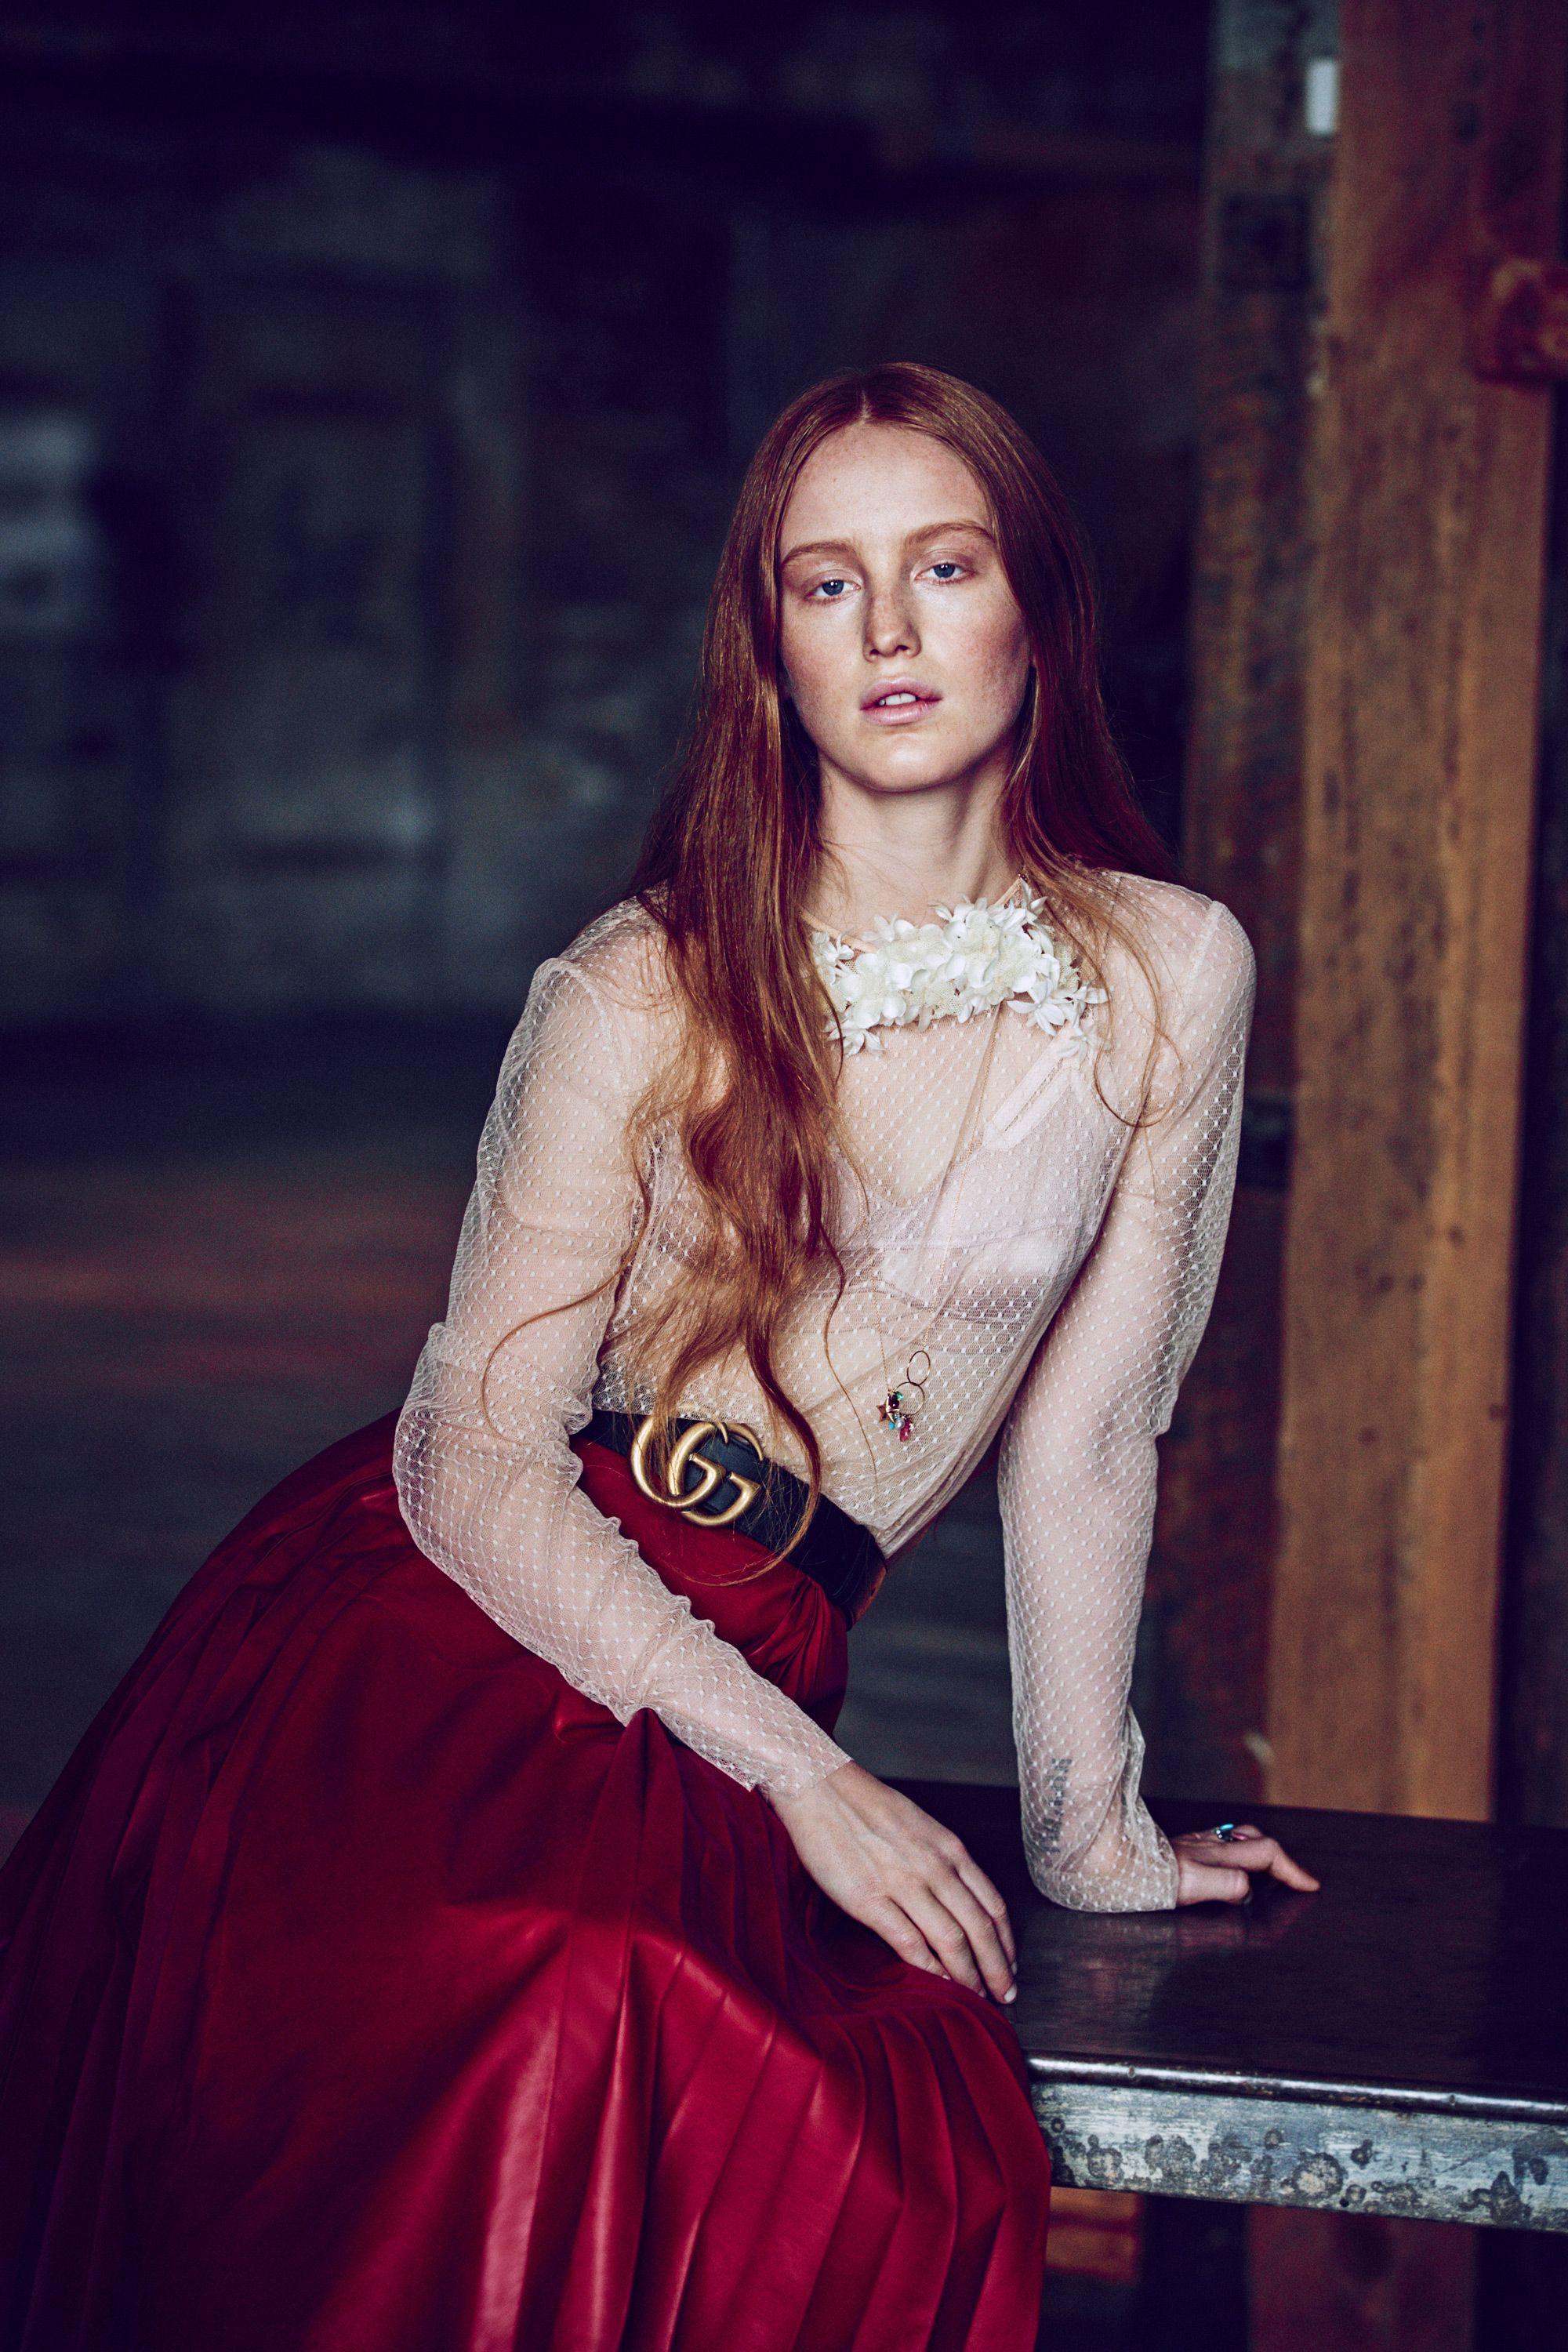 "Whispers of ""Who is that girl?"" were overheard in March at Chanel's New York City reshowing of the Métiers d'Art Collection. The idiosyncratic redhead of interest had seemingly been plucked out of obscurity by the label's It girl scouts to sit alongside Eve Hewson, Dylan Penn, and Lily-Rose Depp. But unlike her front row mates, India Salvor Menuez doesn't hail from a famous family. The 21-year-old was raised in New York's Chinatown by artist parents, whom she credits with showing her ""the possibility and joyous struggle of being your own boss."" And she wasn't overtly clad in Chanel. ""I shop secondhand."" Her reasoning: ""It's better for the planet.""  By 15, Menuez already had a presence on the city's art scene as a co-founder of Luck You, a collective for young creatives. Today the multihyphenate has a hand in every arena of the arts. She generally introduces herself as an artist-cum-actress, but Menuez also counts herself a painter, sculptor, writer, filmmaker, and costume designer. Although she strategically avoids the Hollywood/pop culture spotlight, intellectual hipsters have spotted her in indie films, such as <em>Something in the Air</em>, which premiered at the 2012 Venice Film Festival, and guerrilla-style performance art pieces; her feminist group show ""Milk and Night"" drew crowds at last year's Miami Art Basel. Widespread recognition may be unavoidable: Pharrell cast her as a model for the cover of his <em>Girl</em> album, and critics are comparing her controversial character in the upcoming indie film <em>White Girl</em> to Chloë Sevigny's 1995 breakout role in <em>Kids</em>. And, of course, there is that Chanel front row."